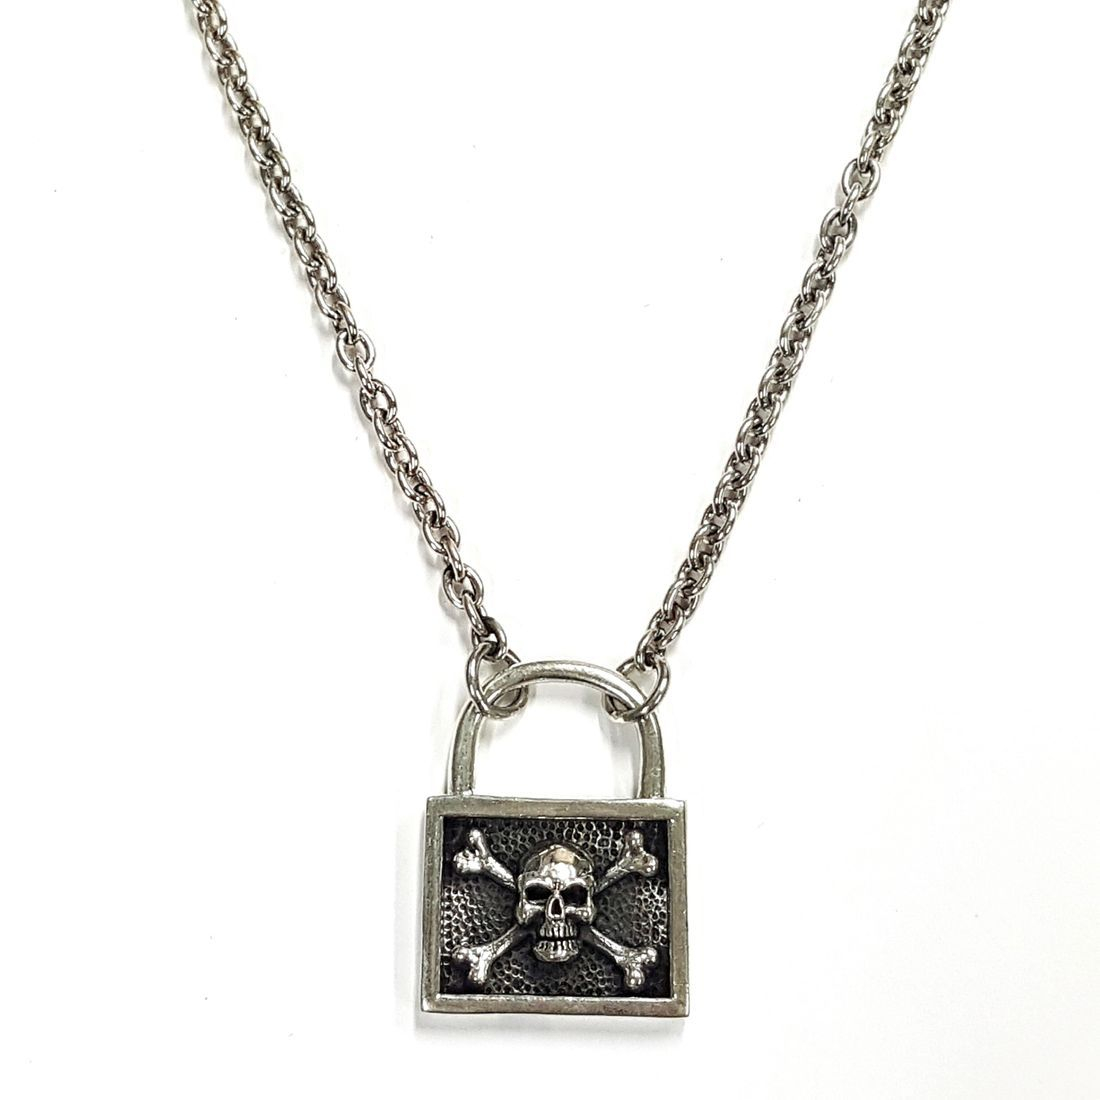 Skull & Cross Bones Padlock Chain  available at Kazbah online and our Leicester City Centre Shop